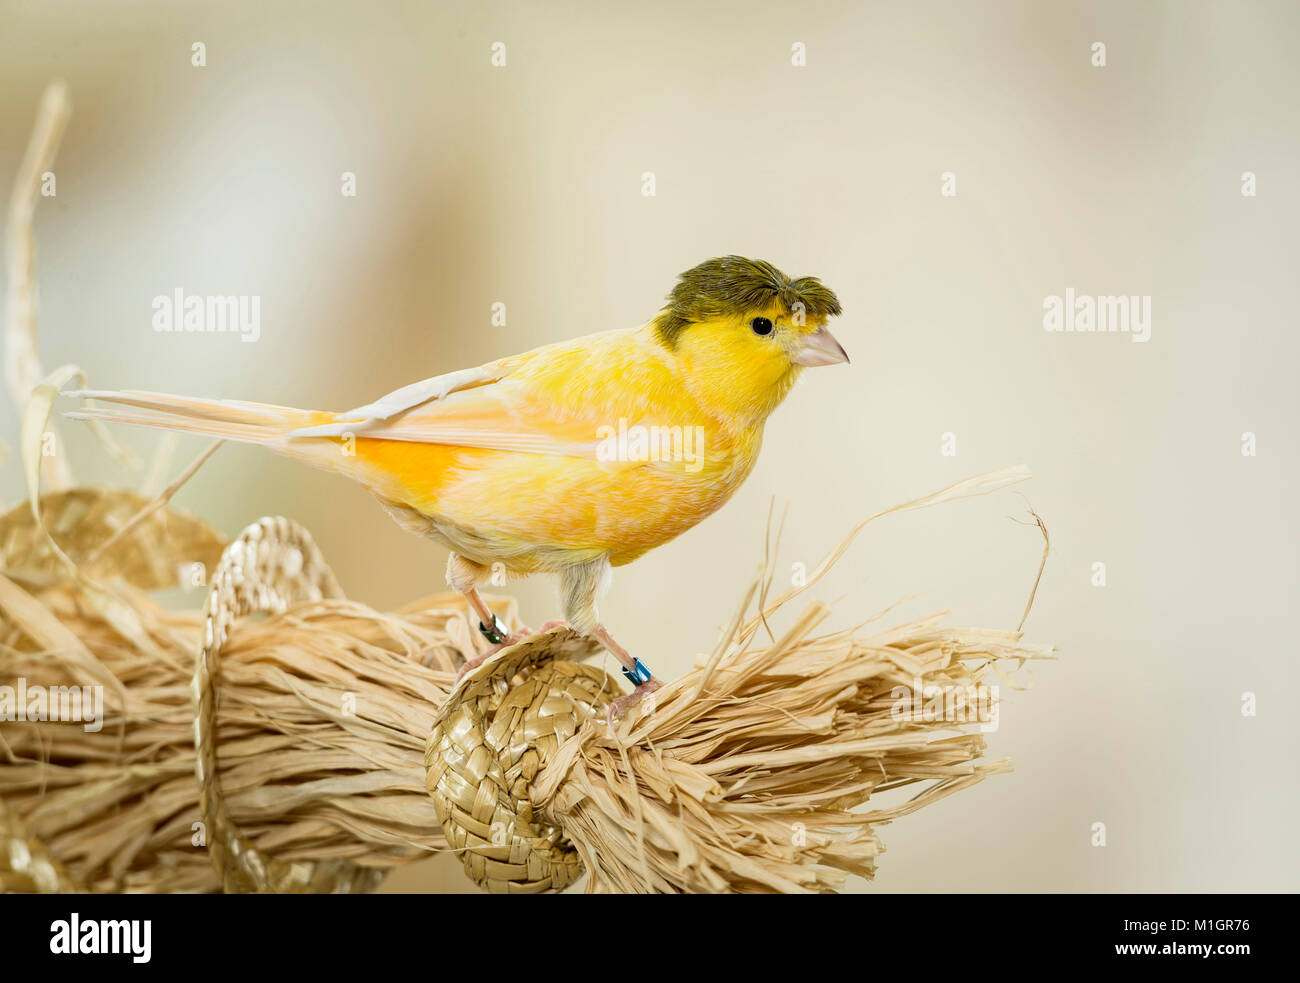 Domestic Canary. Crested adult standing on bundle of bast fibres. Germany. - Stock Image